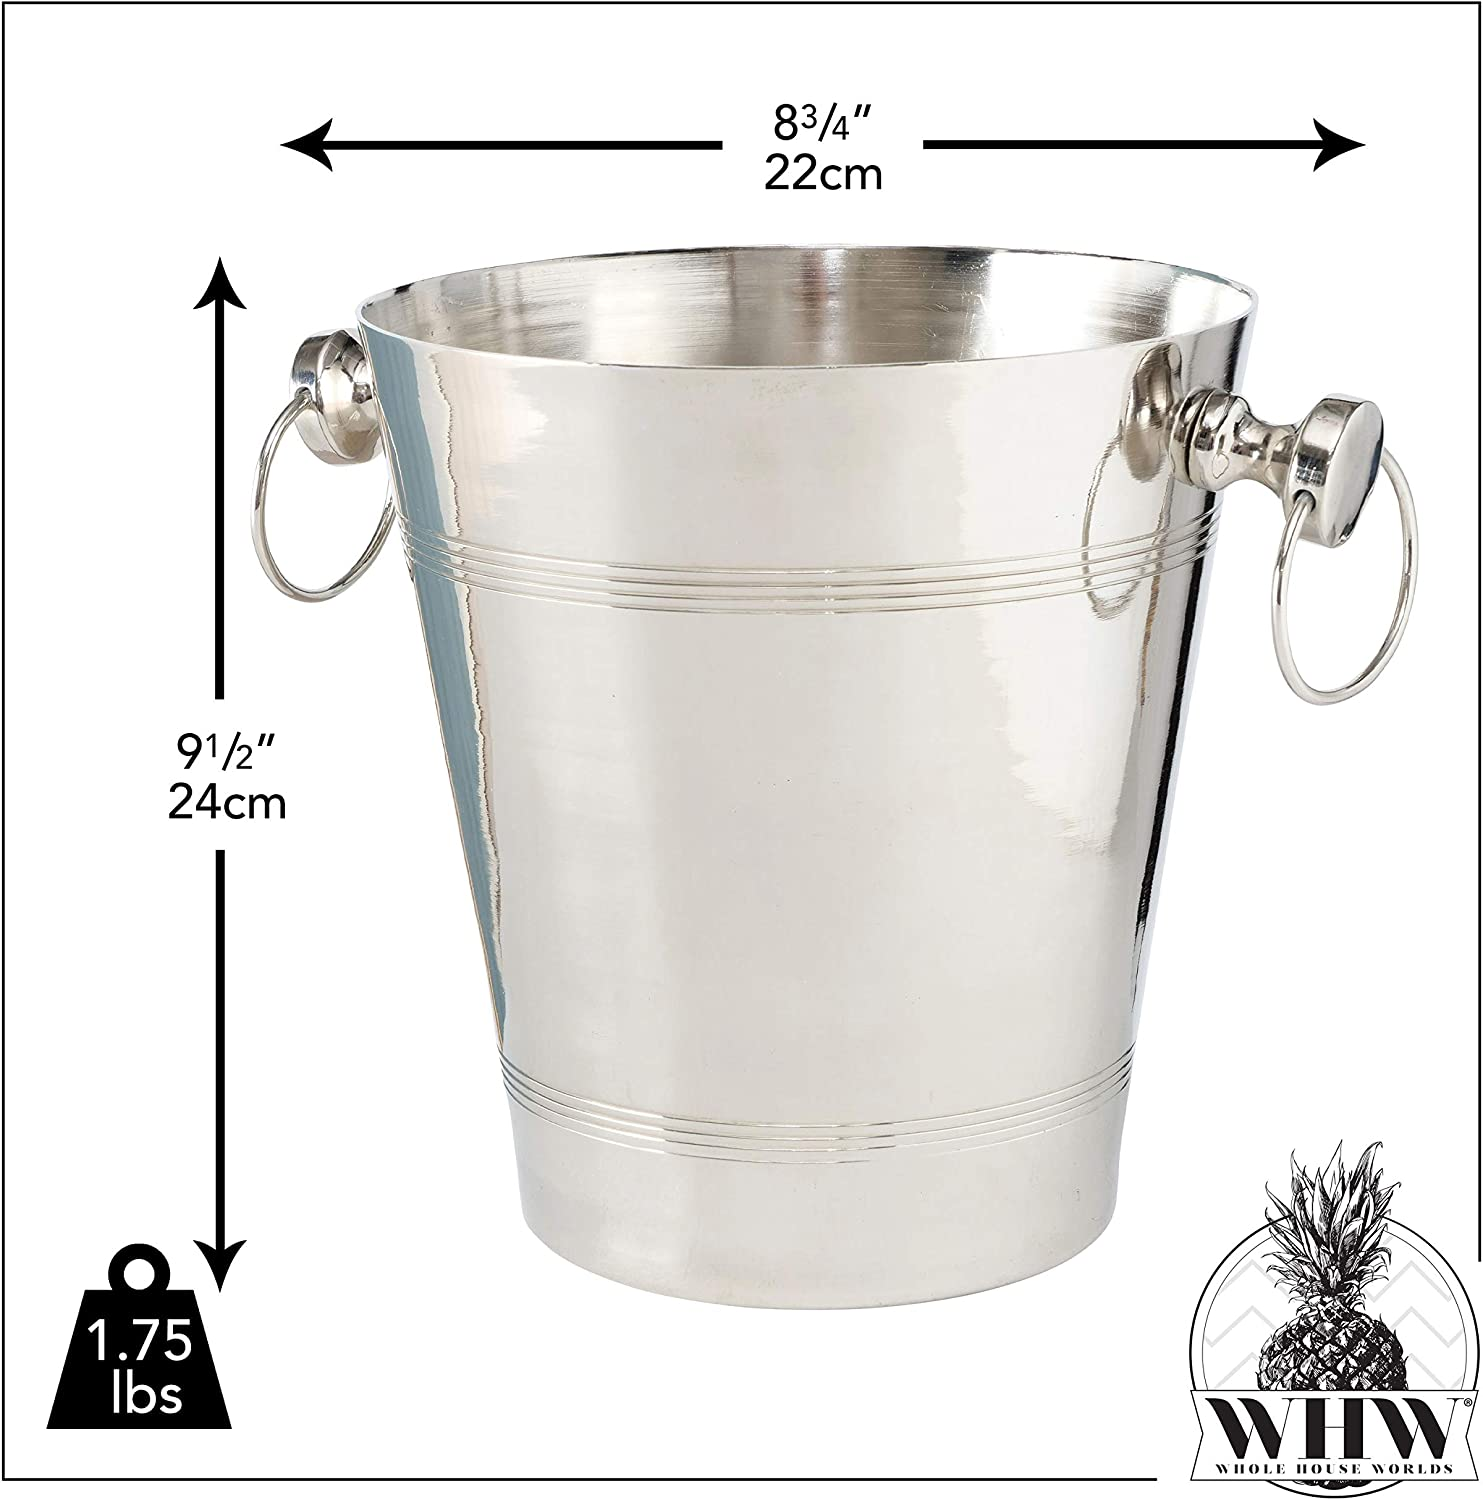 WHW Whole House Worlds Old World Luxurious Grand Hotel Champagne Bucket Silver Aluminum Nickel 8.75 D W x 9.5 H Inches